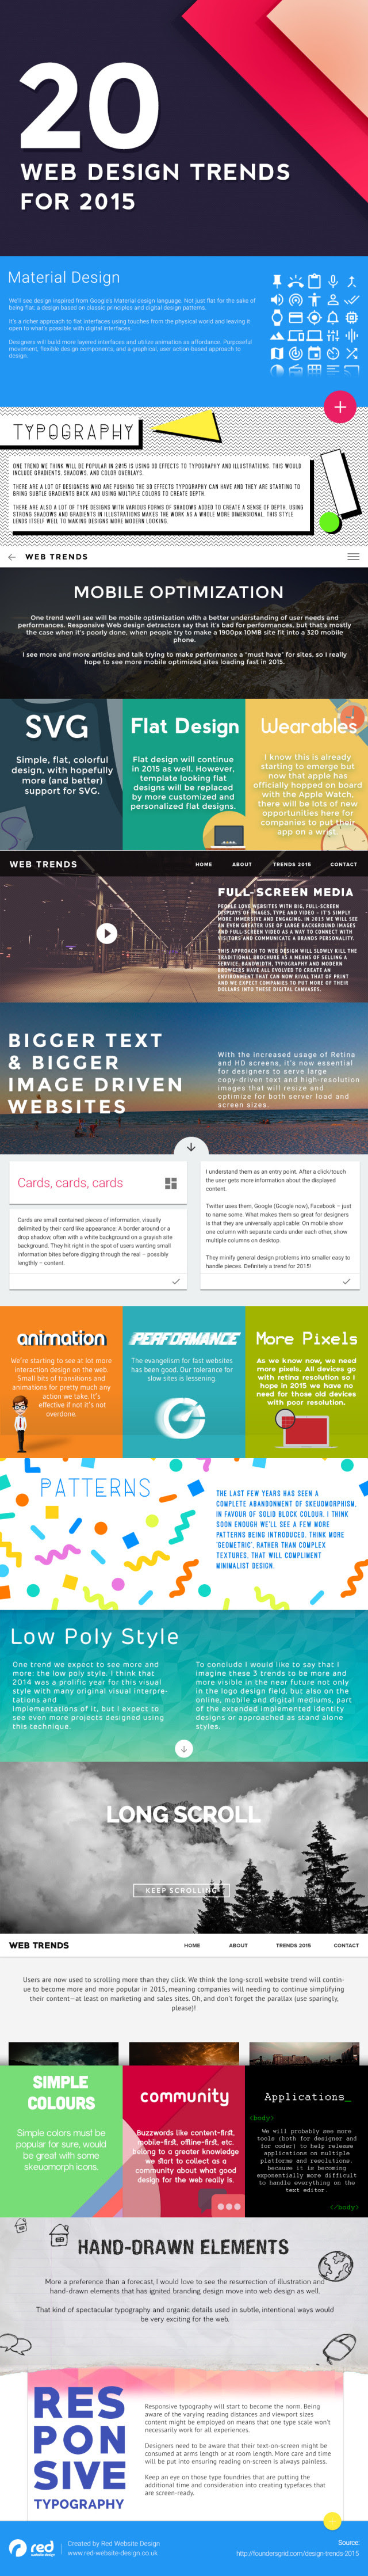 Infographic: 20 Web Design Trends for 2015